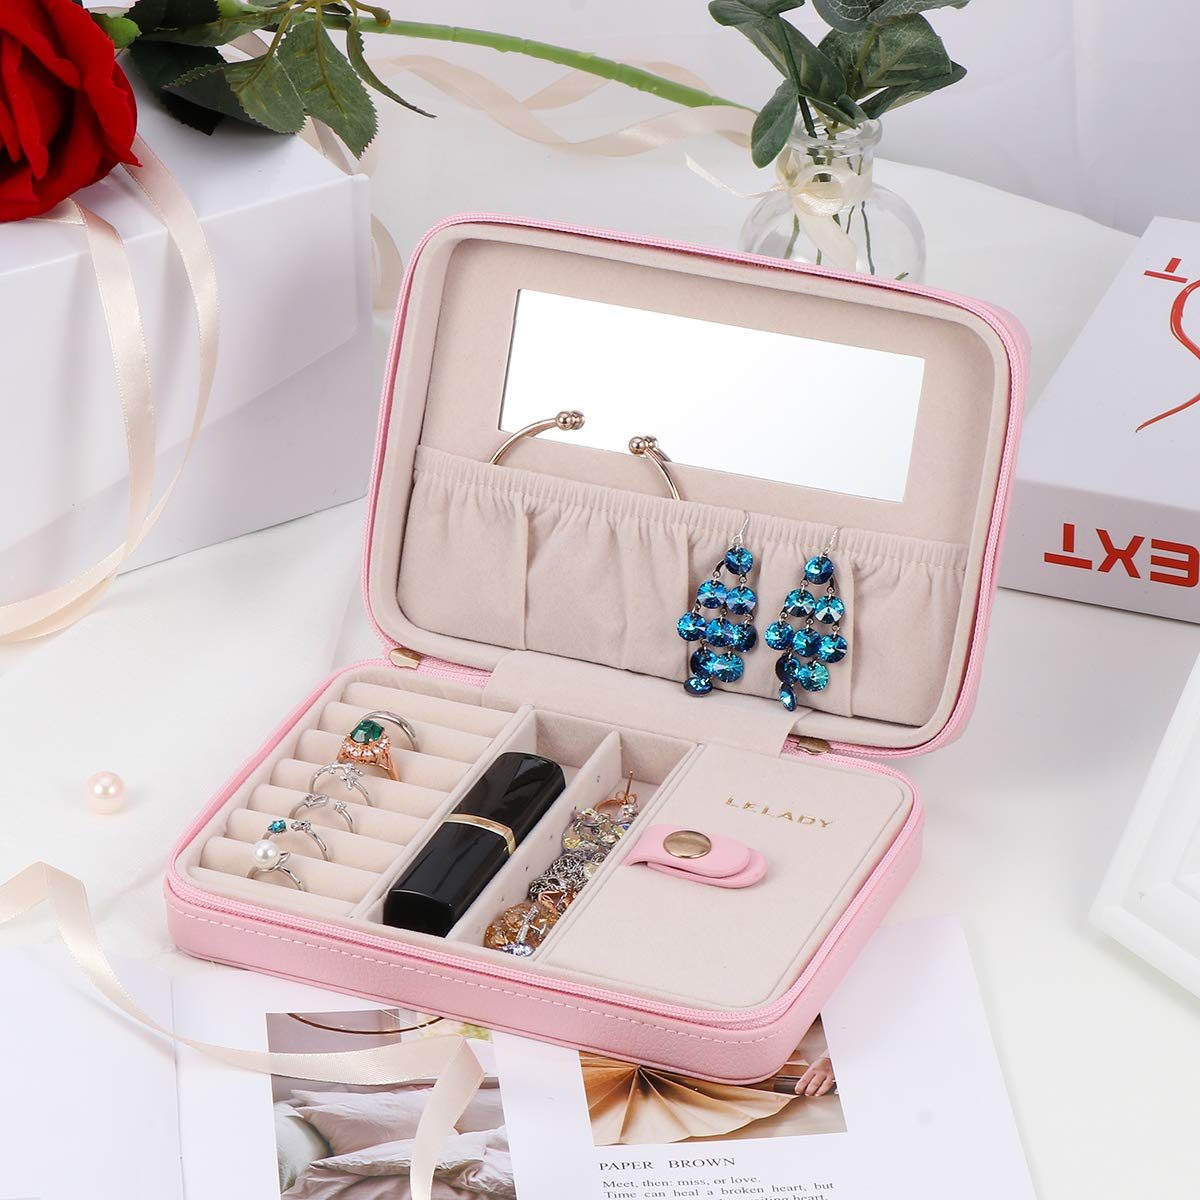 Black LELADY JEWELRY Jewellery Box Organiser Small Travel Jewellery Case Portable Faux Leather Jewellery Organiser Box Storage Holder with Large Mirror for Women Girls